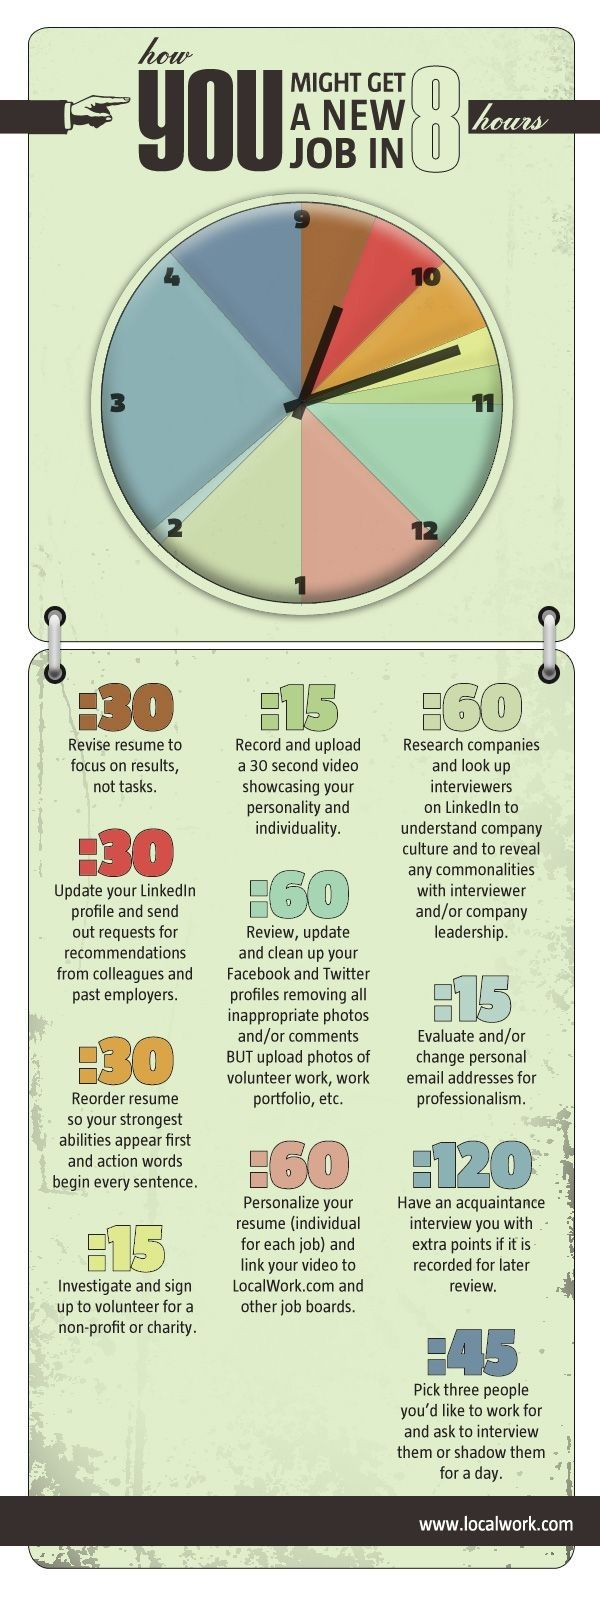 best images about infographics interview body ideas for how to be productive and a new job some interesting thoughts i love the idea of time limits so i don t spend so much time freaking about